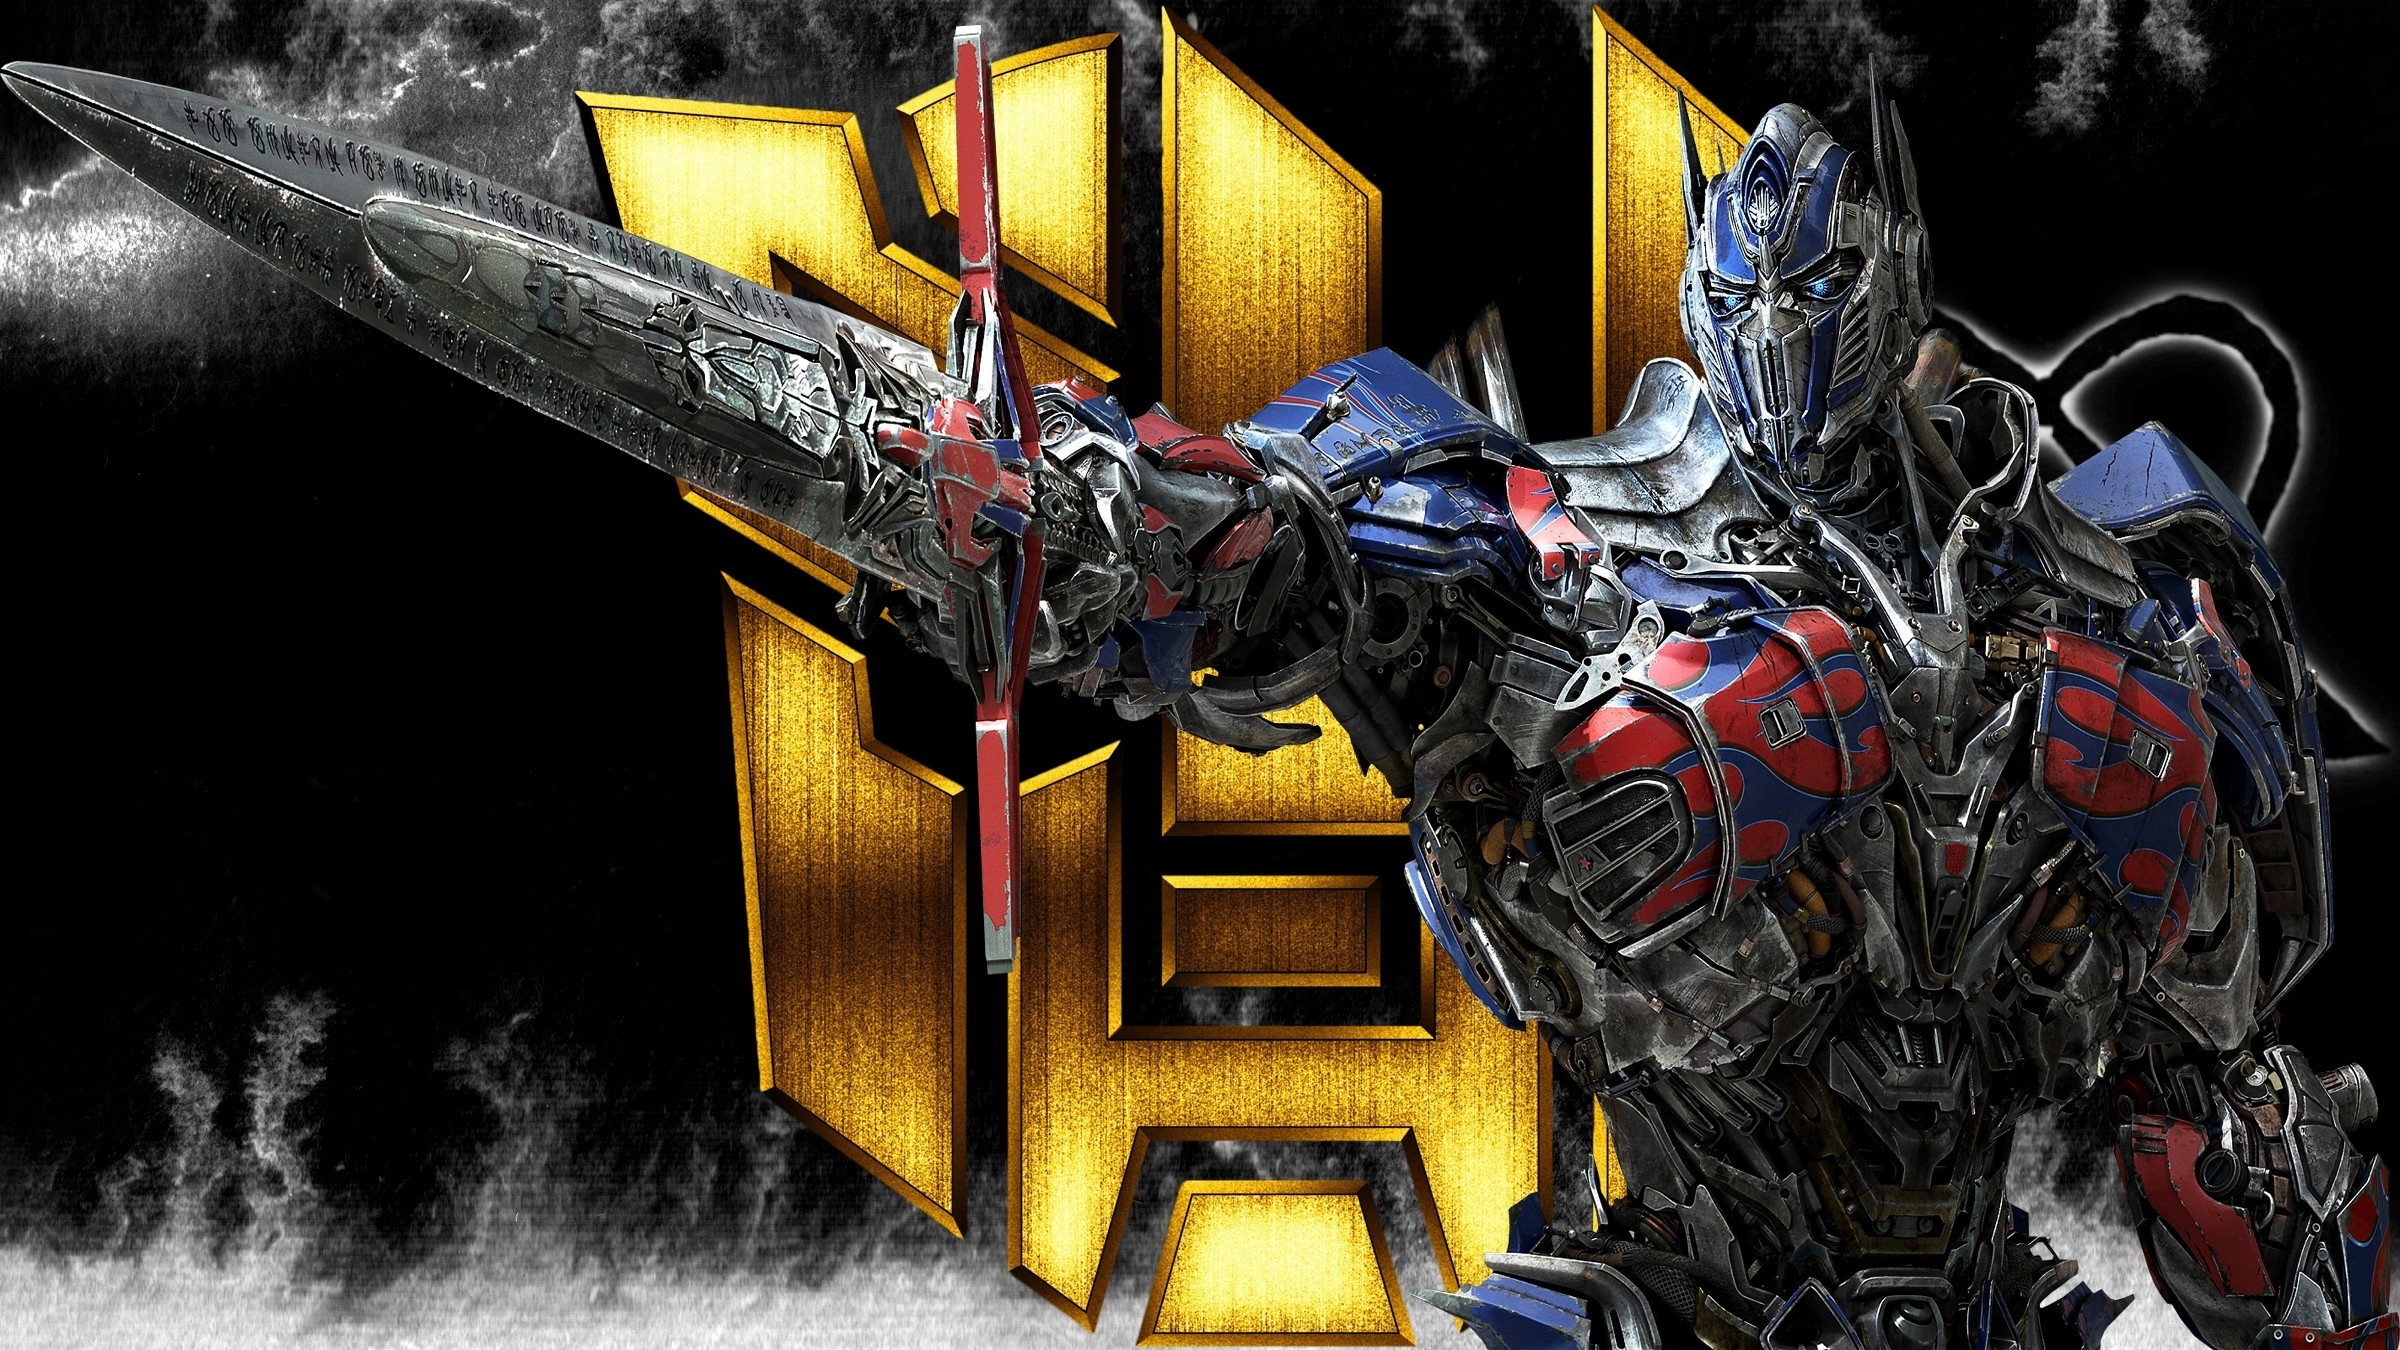 Transformers Optimus Prime Wallpapers 66 Background Pictures